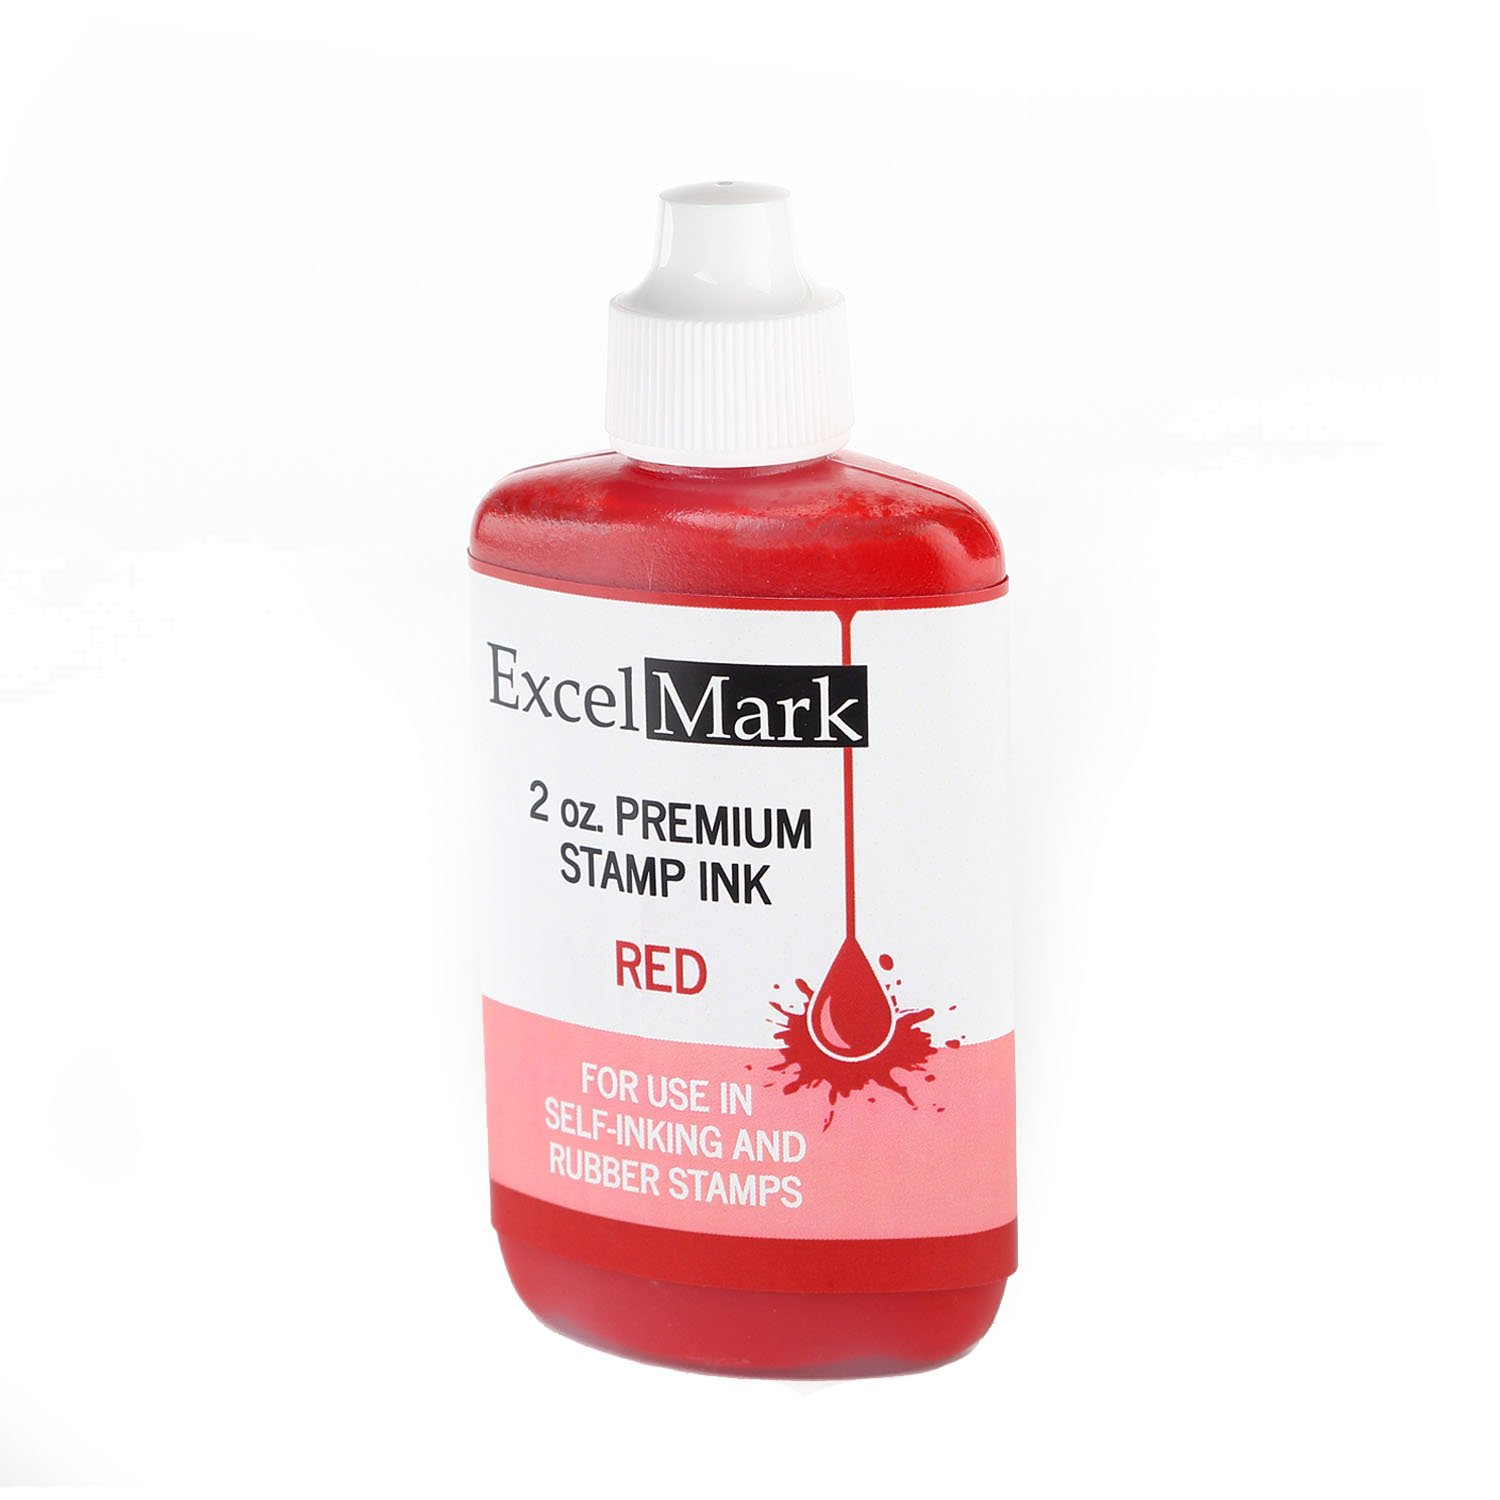 Timbro autoinchiostrante refill Ink by Excelmark–2oz–Red Ink–Ships free by Excelmark Discount Rubber Stamps